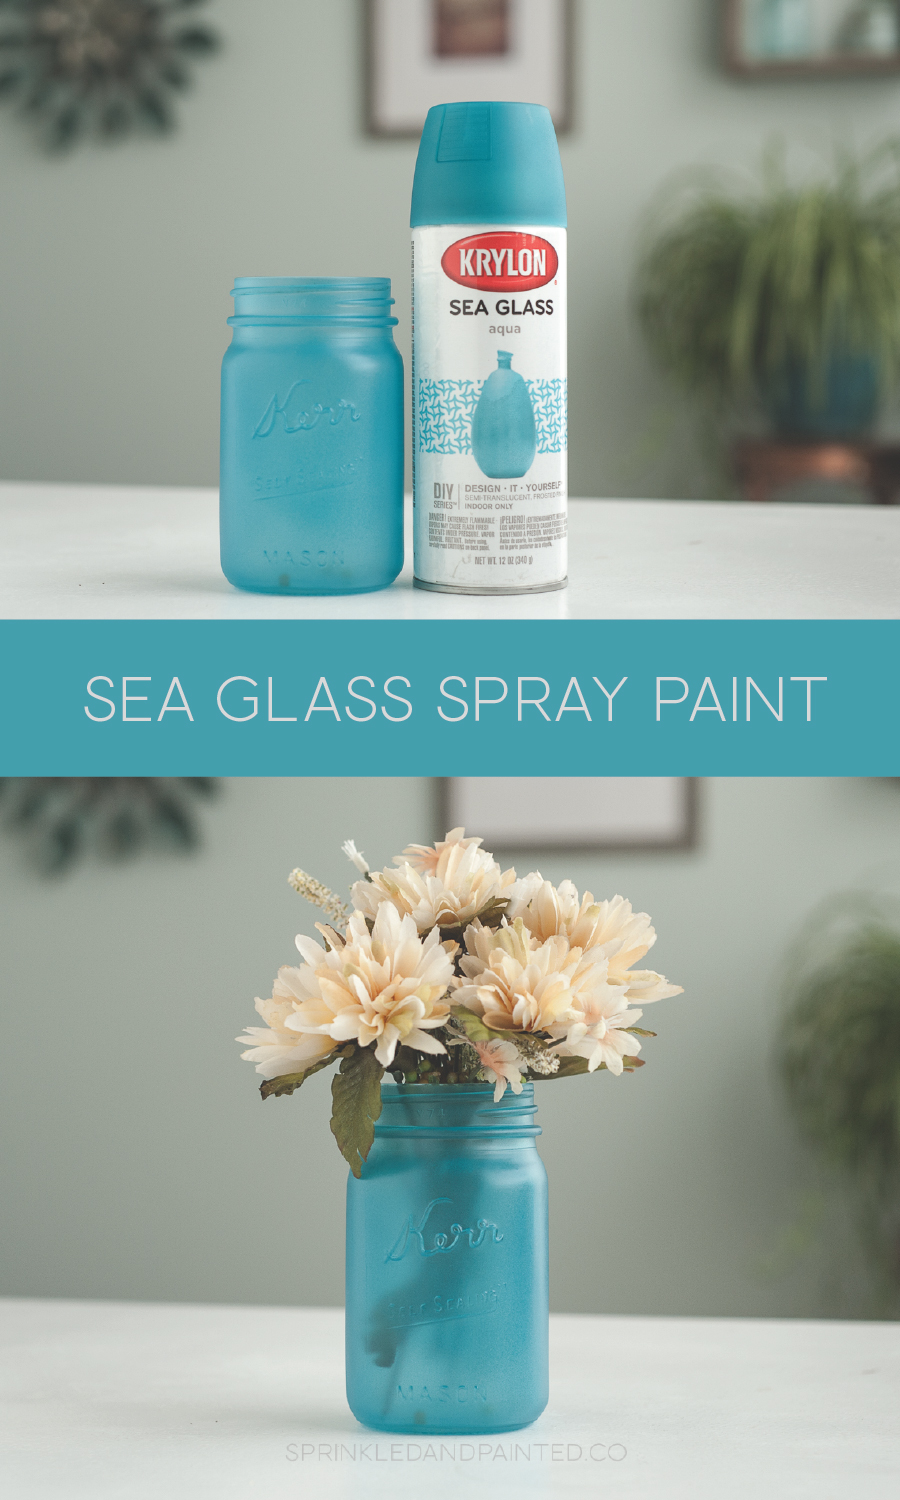 Krylon Sea Glass spray paint, aqua.